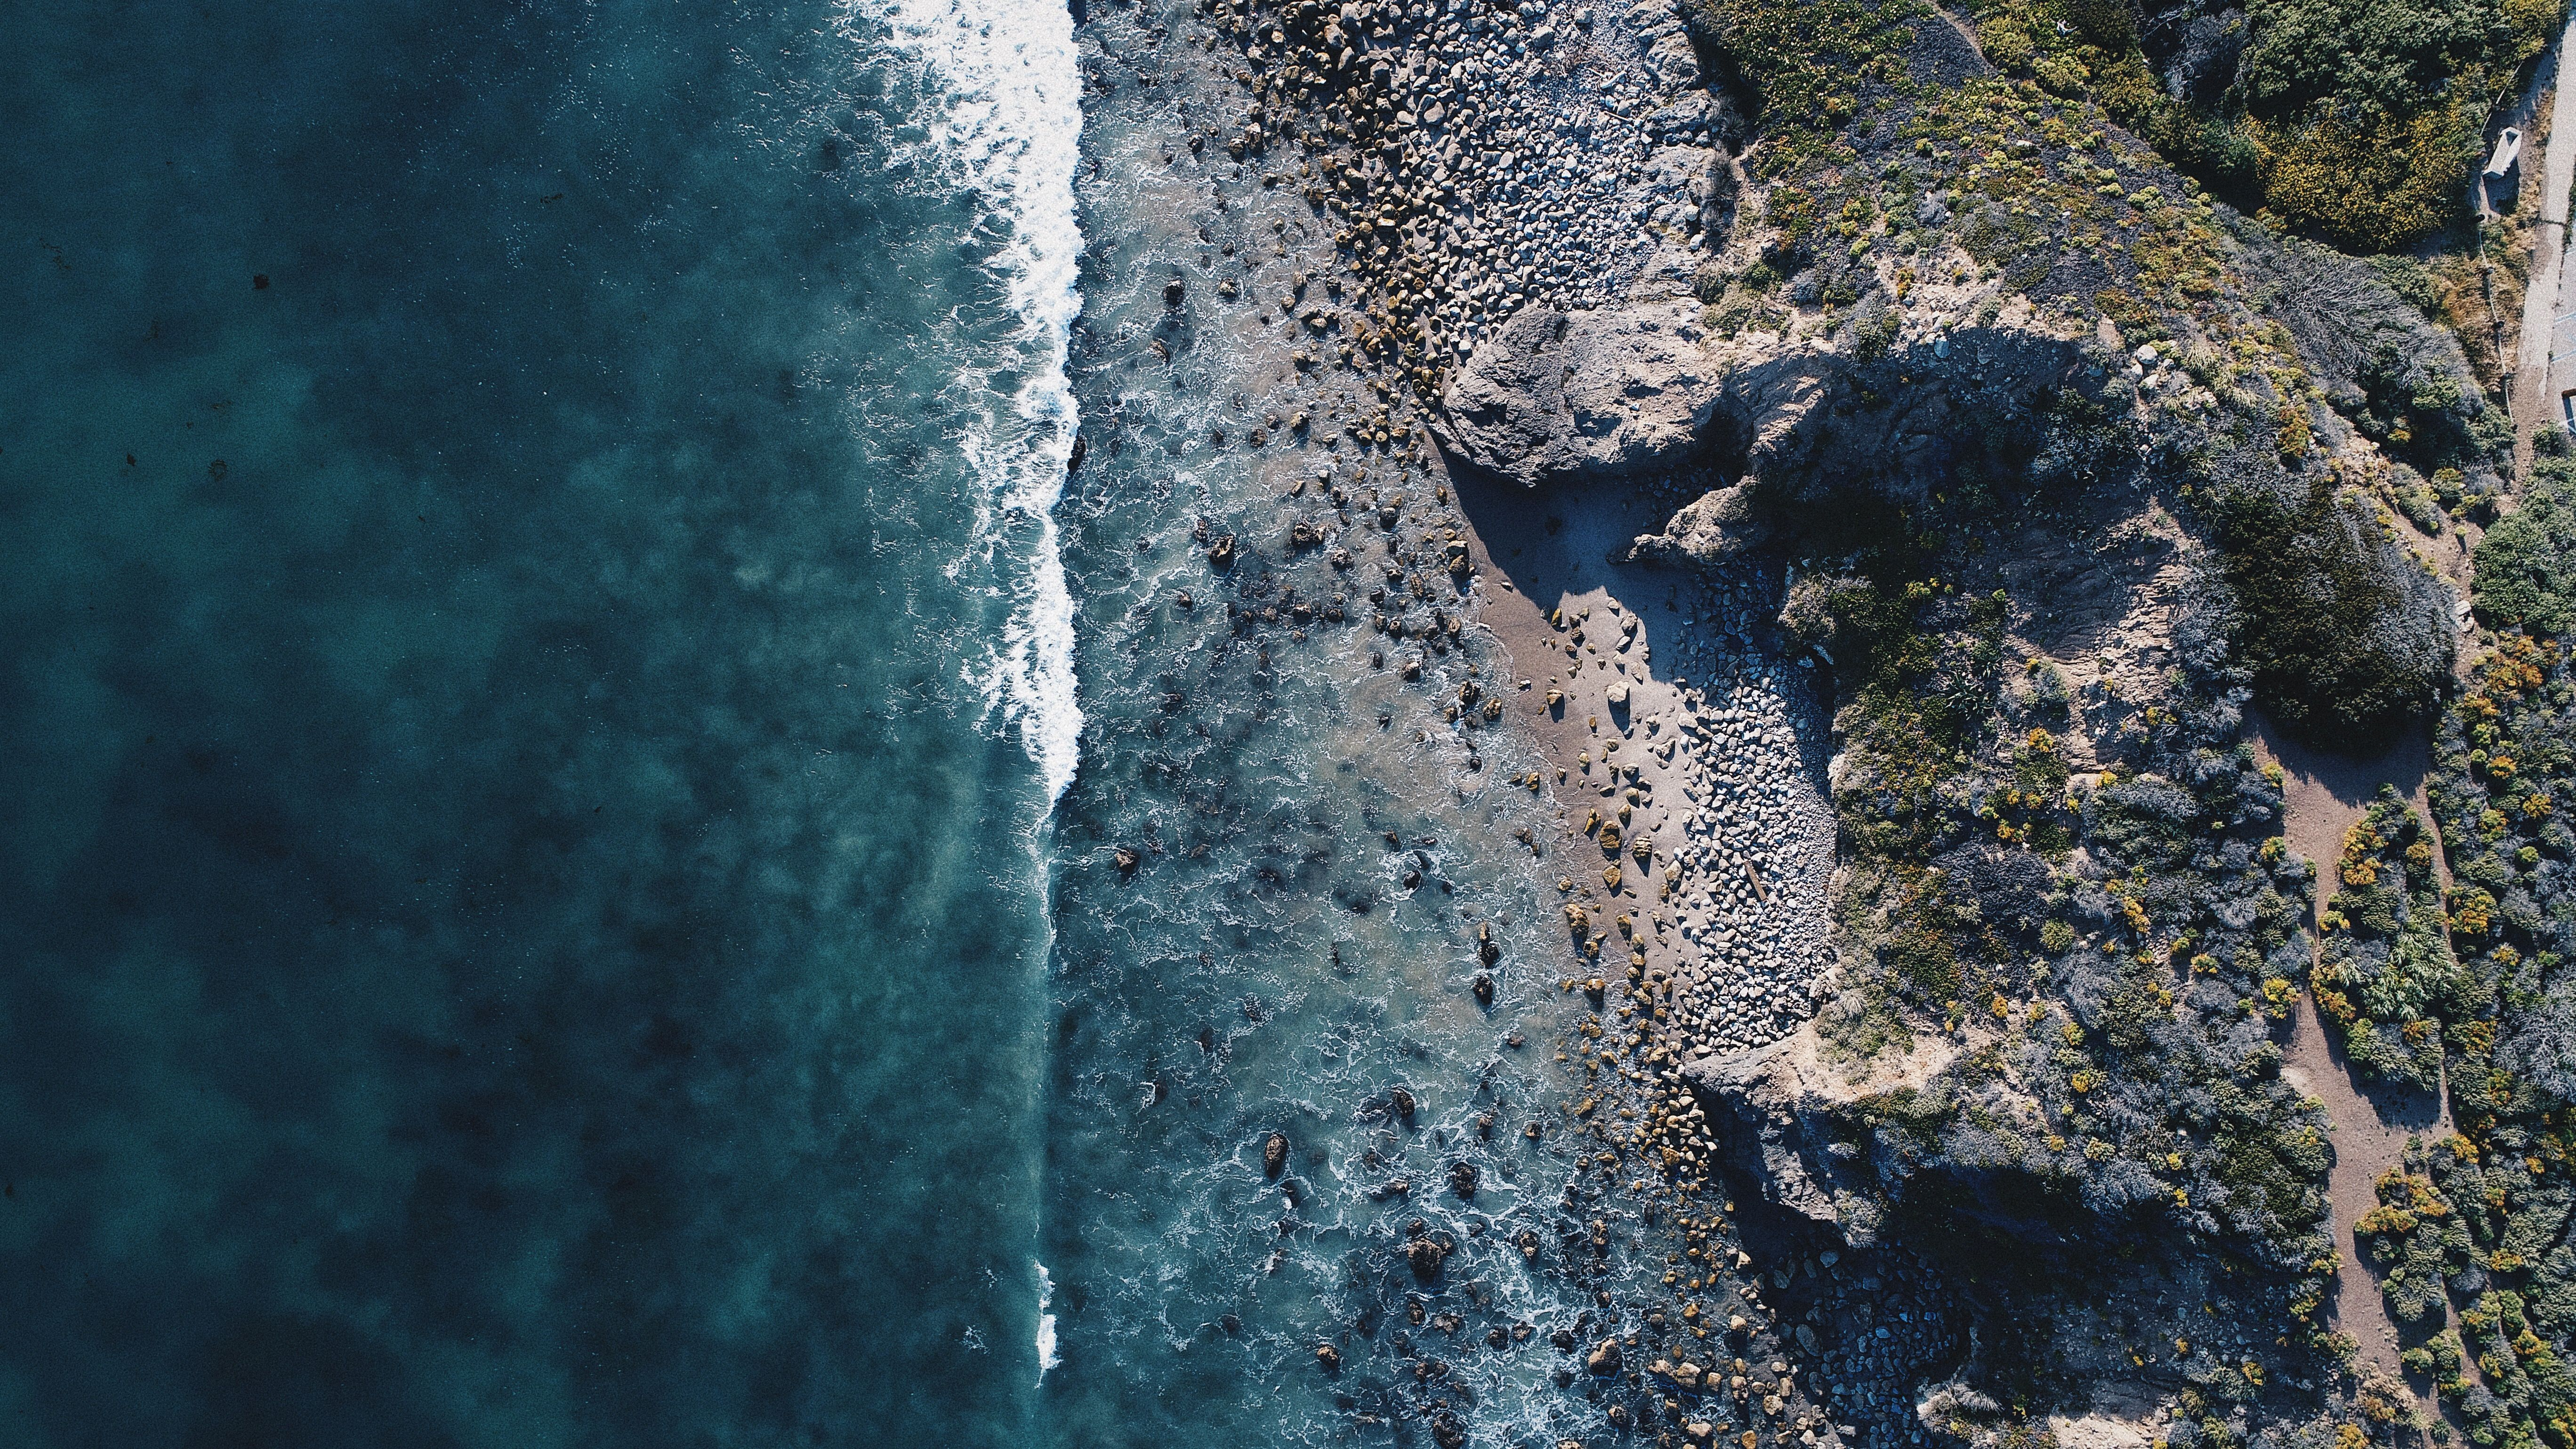 Drone Footage Wave Surfing Photography Surfing Natural Landmarks